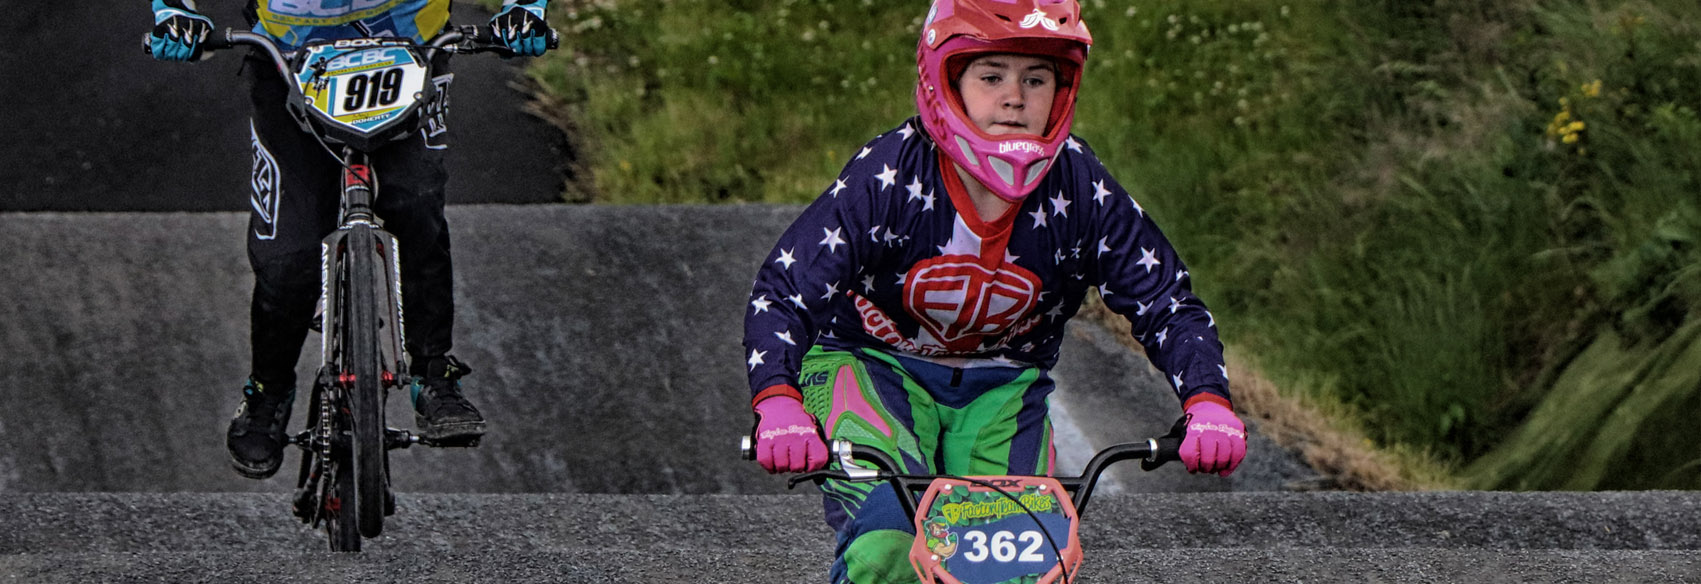 Katie Lemon Irish Rider Profiles - Fifteen BMX